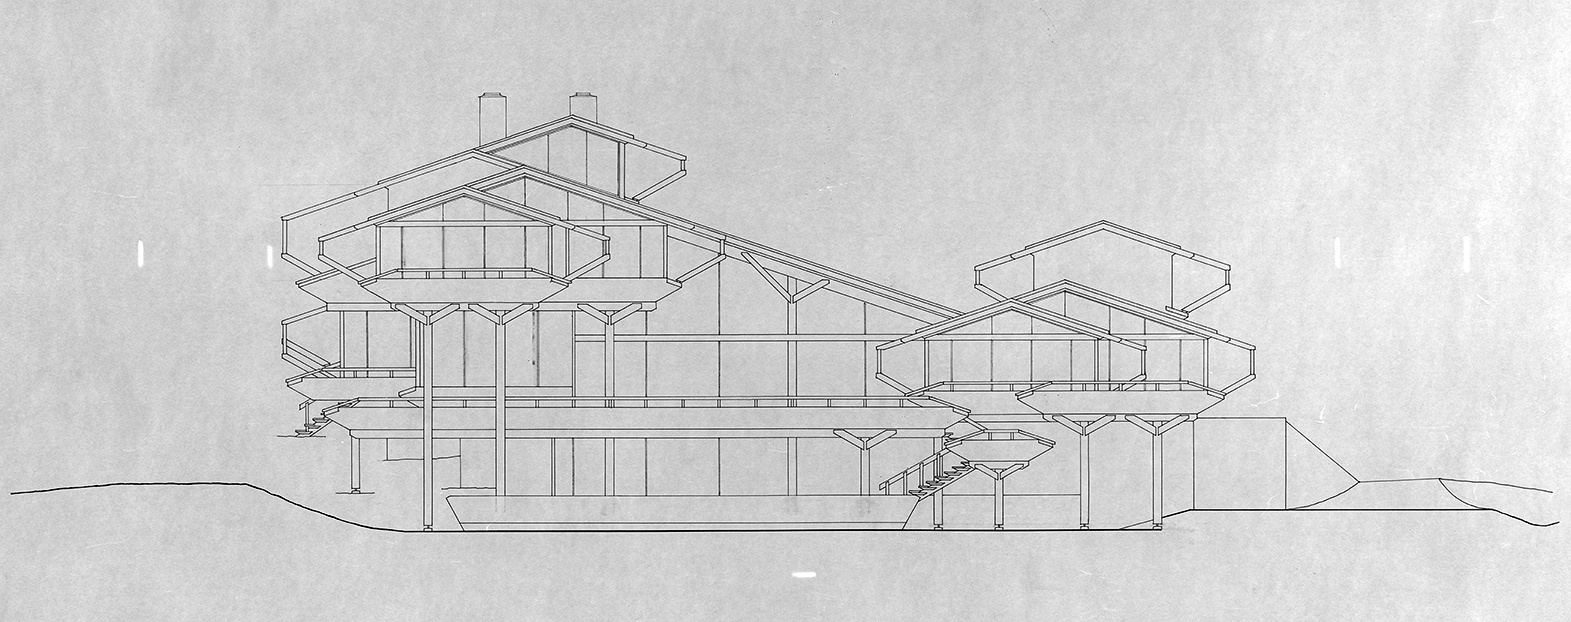 Deane residence, Great Neck, New York. Building Elevation. Circa 1971.